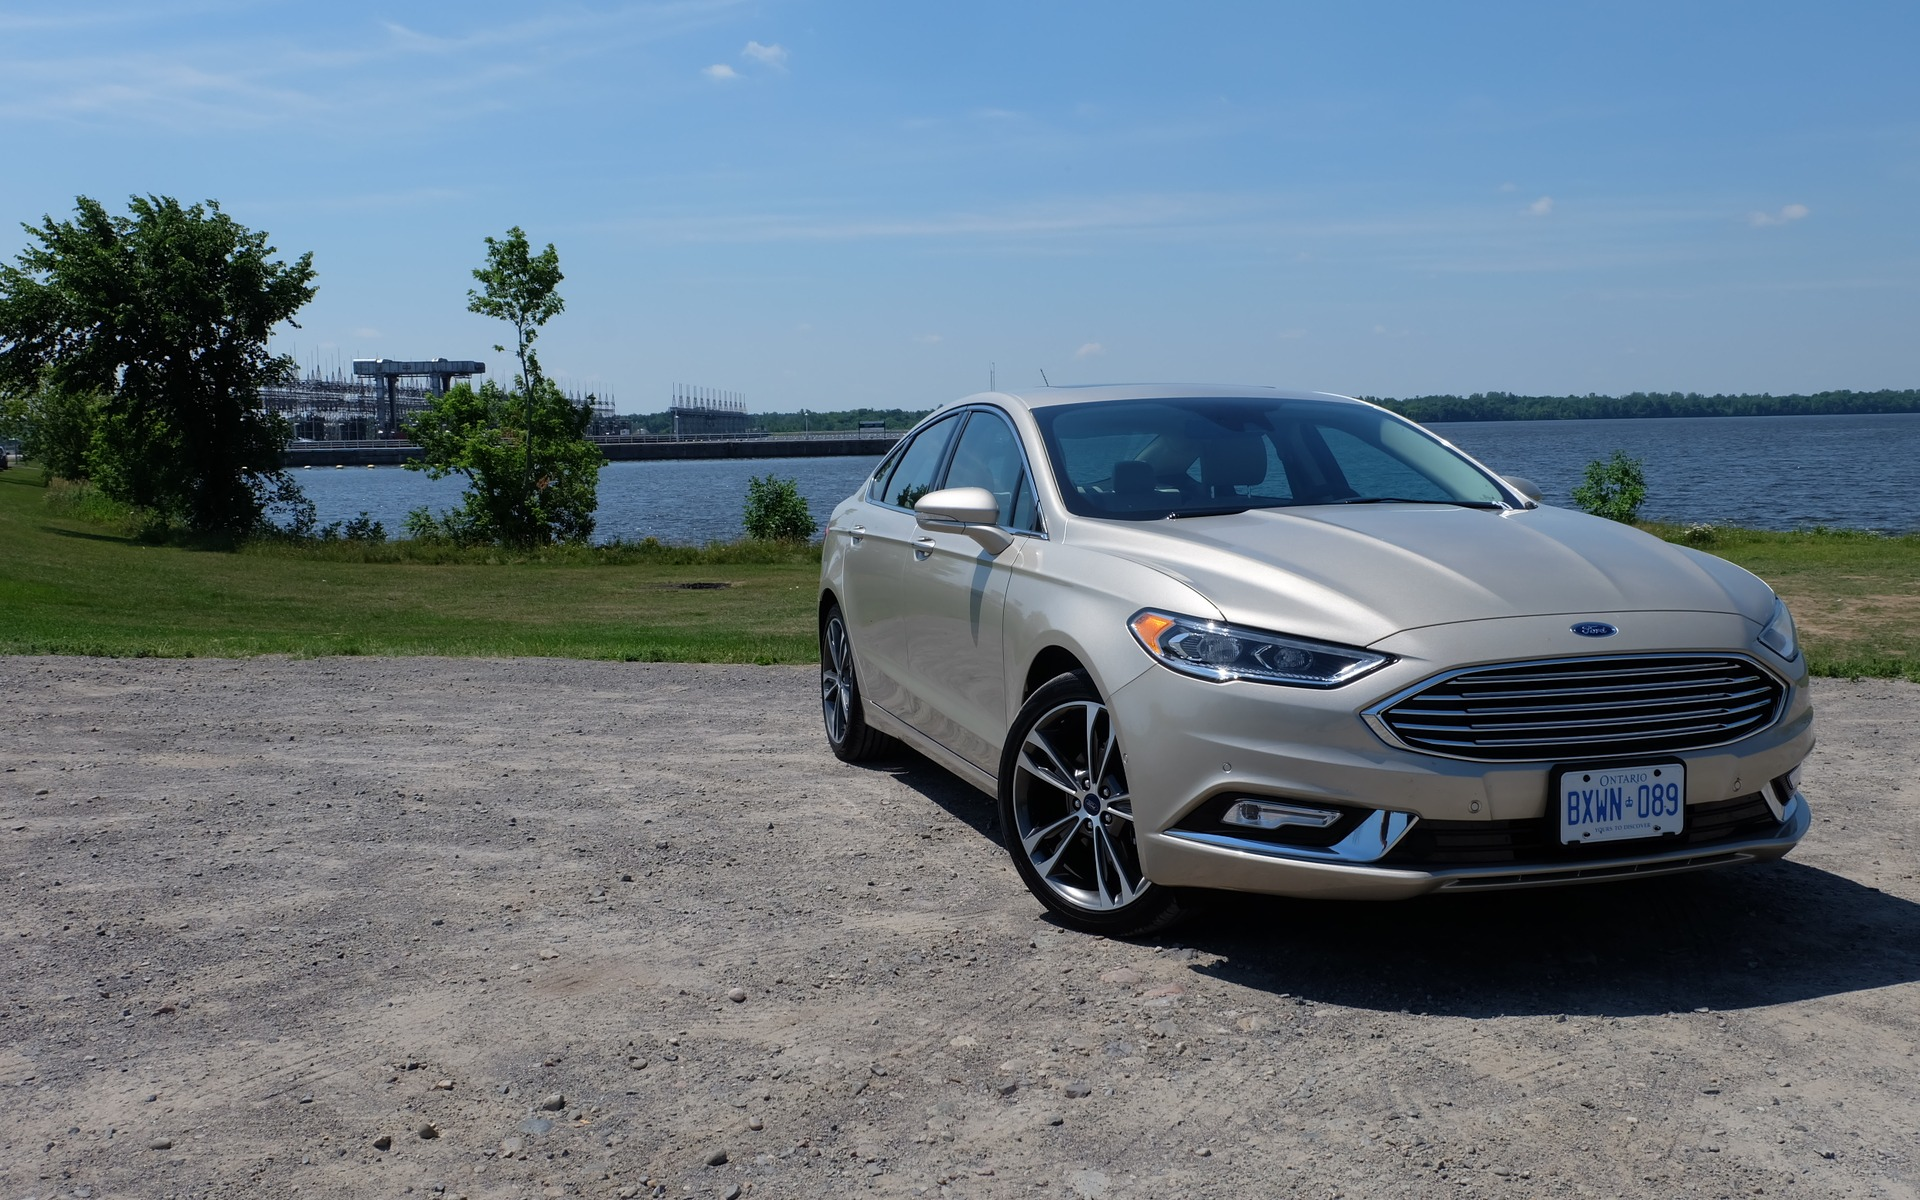 2017 ford fusion s specifications the car guide. Black Bedroom Furniture Sets. Home Design Ideas